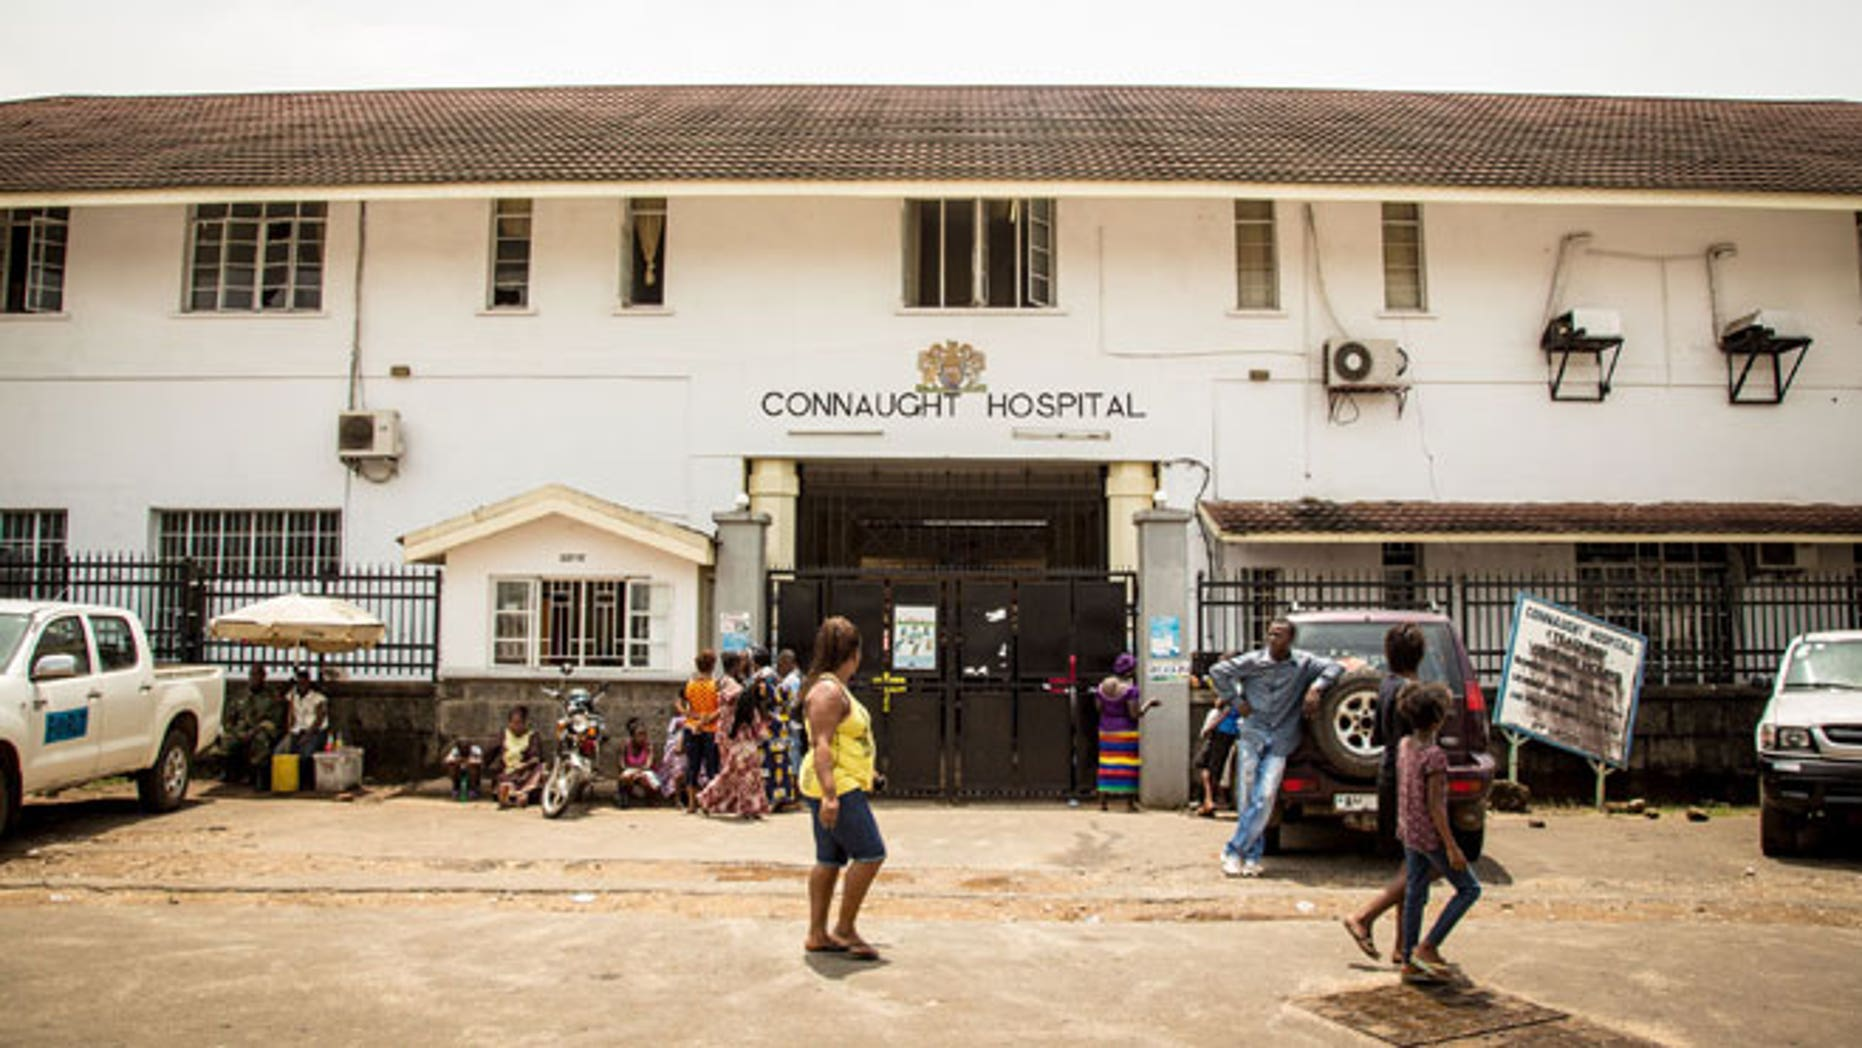 In this photo taken on Sunday, Sept. 14, 2014, people walk past the Connaught Hospital that is used for treating people suffering from the Ebola virus in Freetown, Sierra Leone.